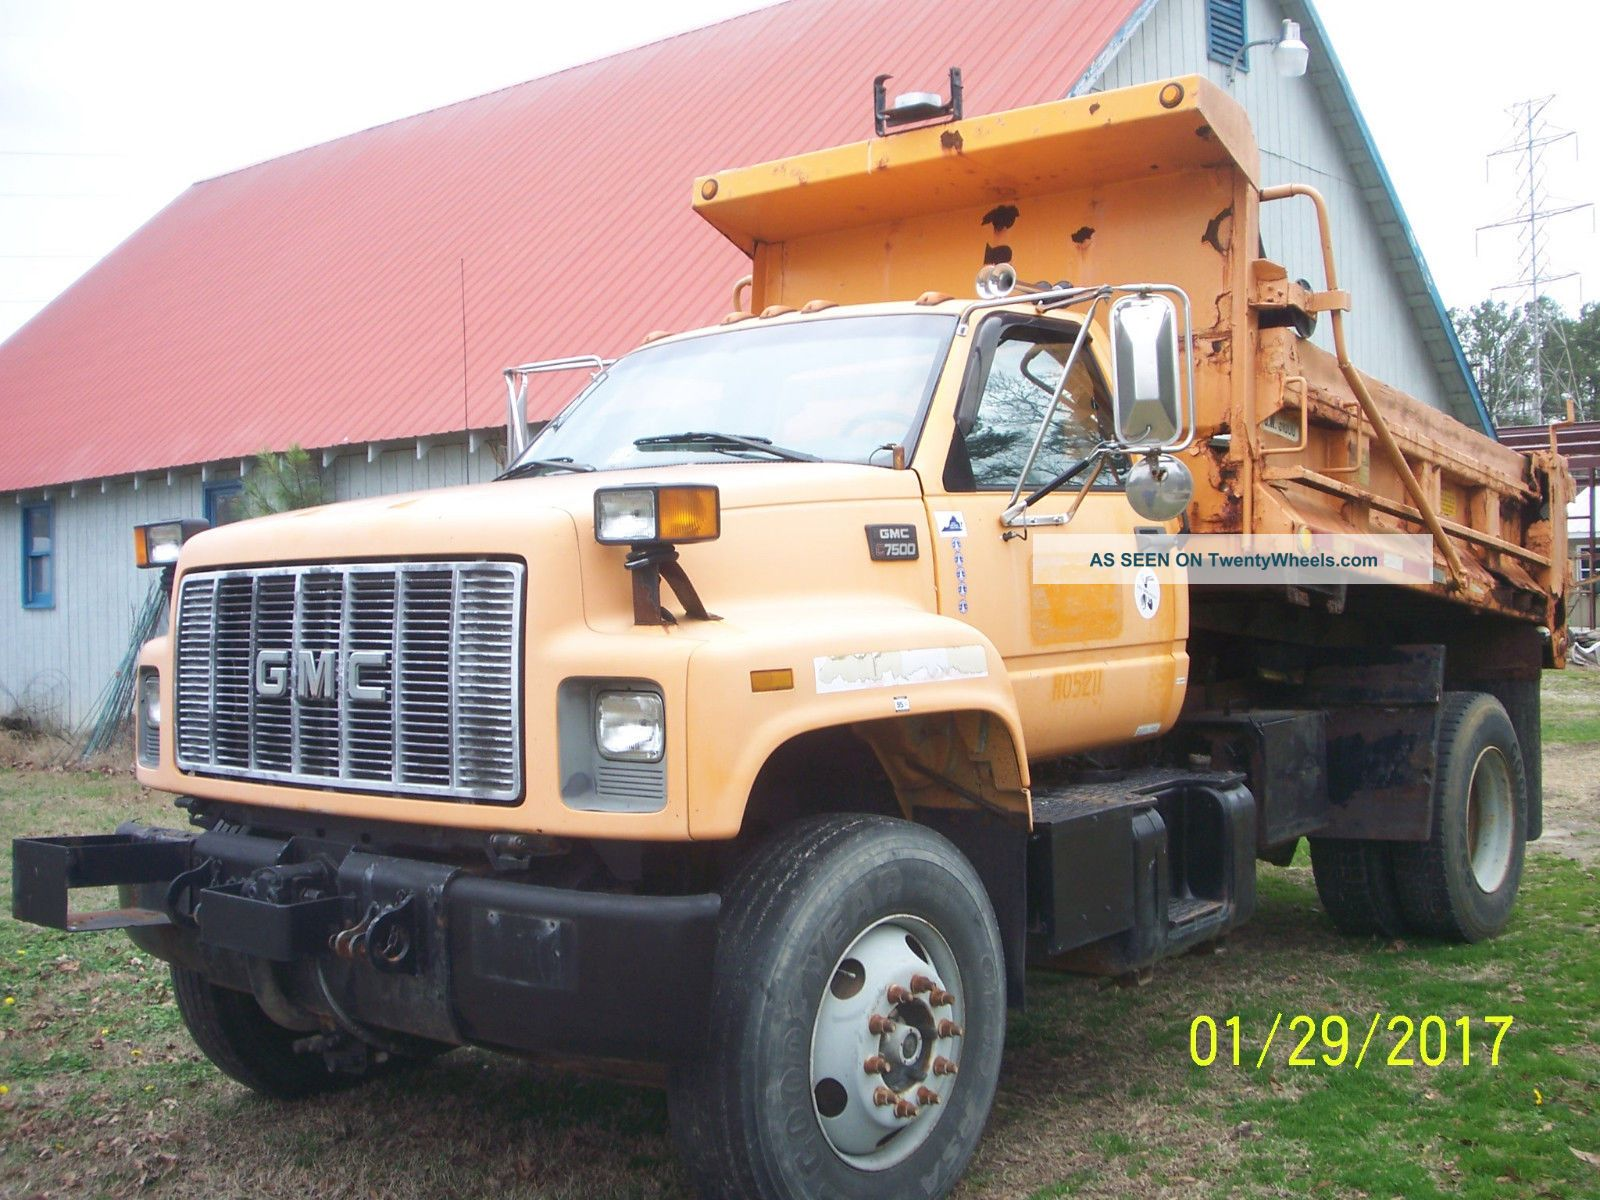 2001 Gmc 7500 Dump Trucks photo